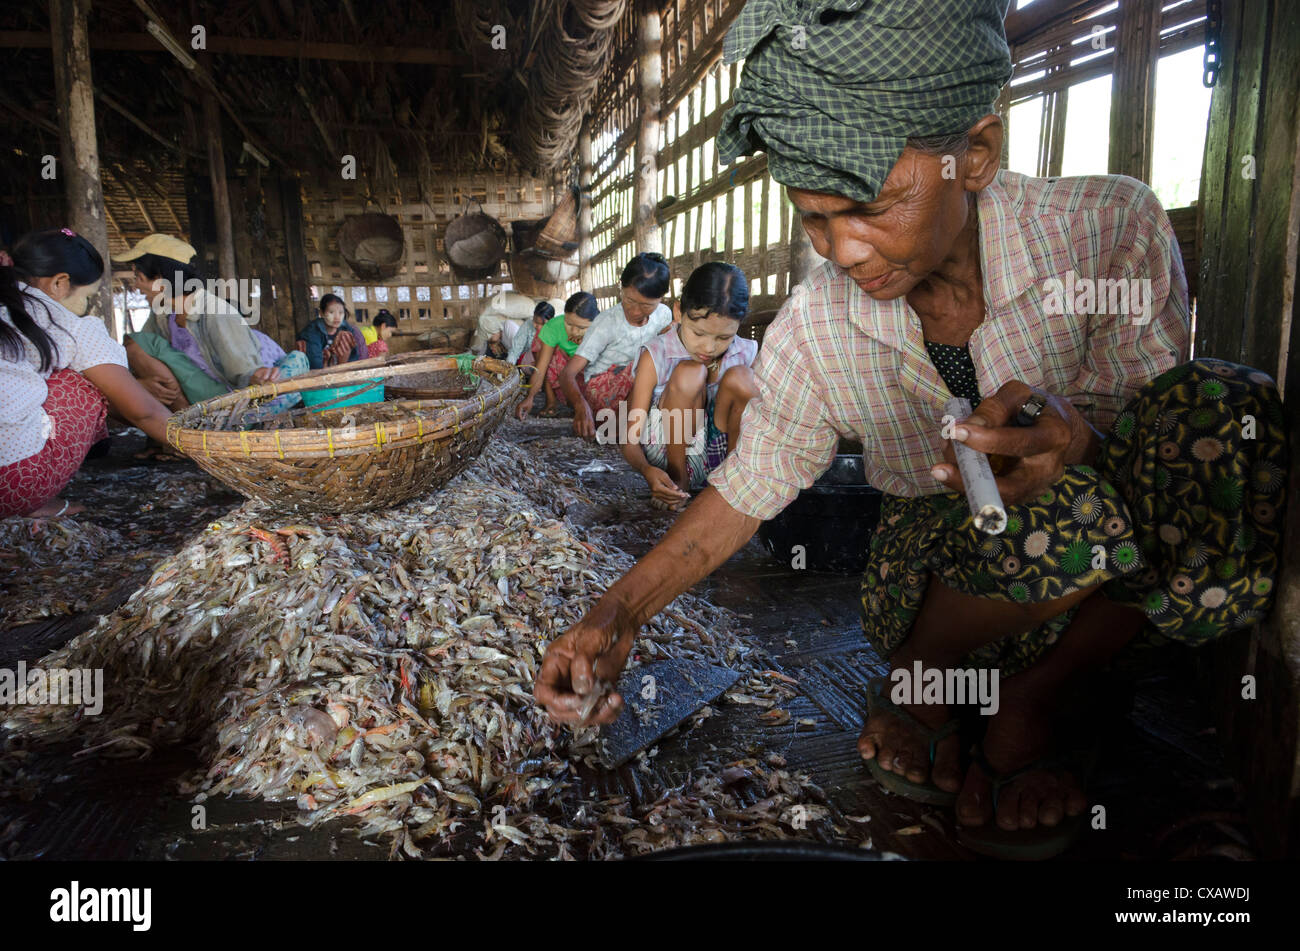 Elderly woman with cigar sorting out fish catch in the fishing village of Lay Win Kwin. Irrawaddy Delta, Myanmar - Stock Image